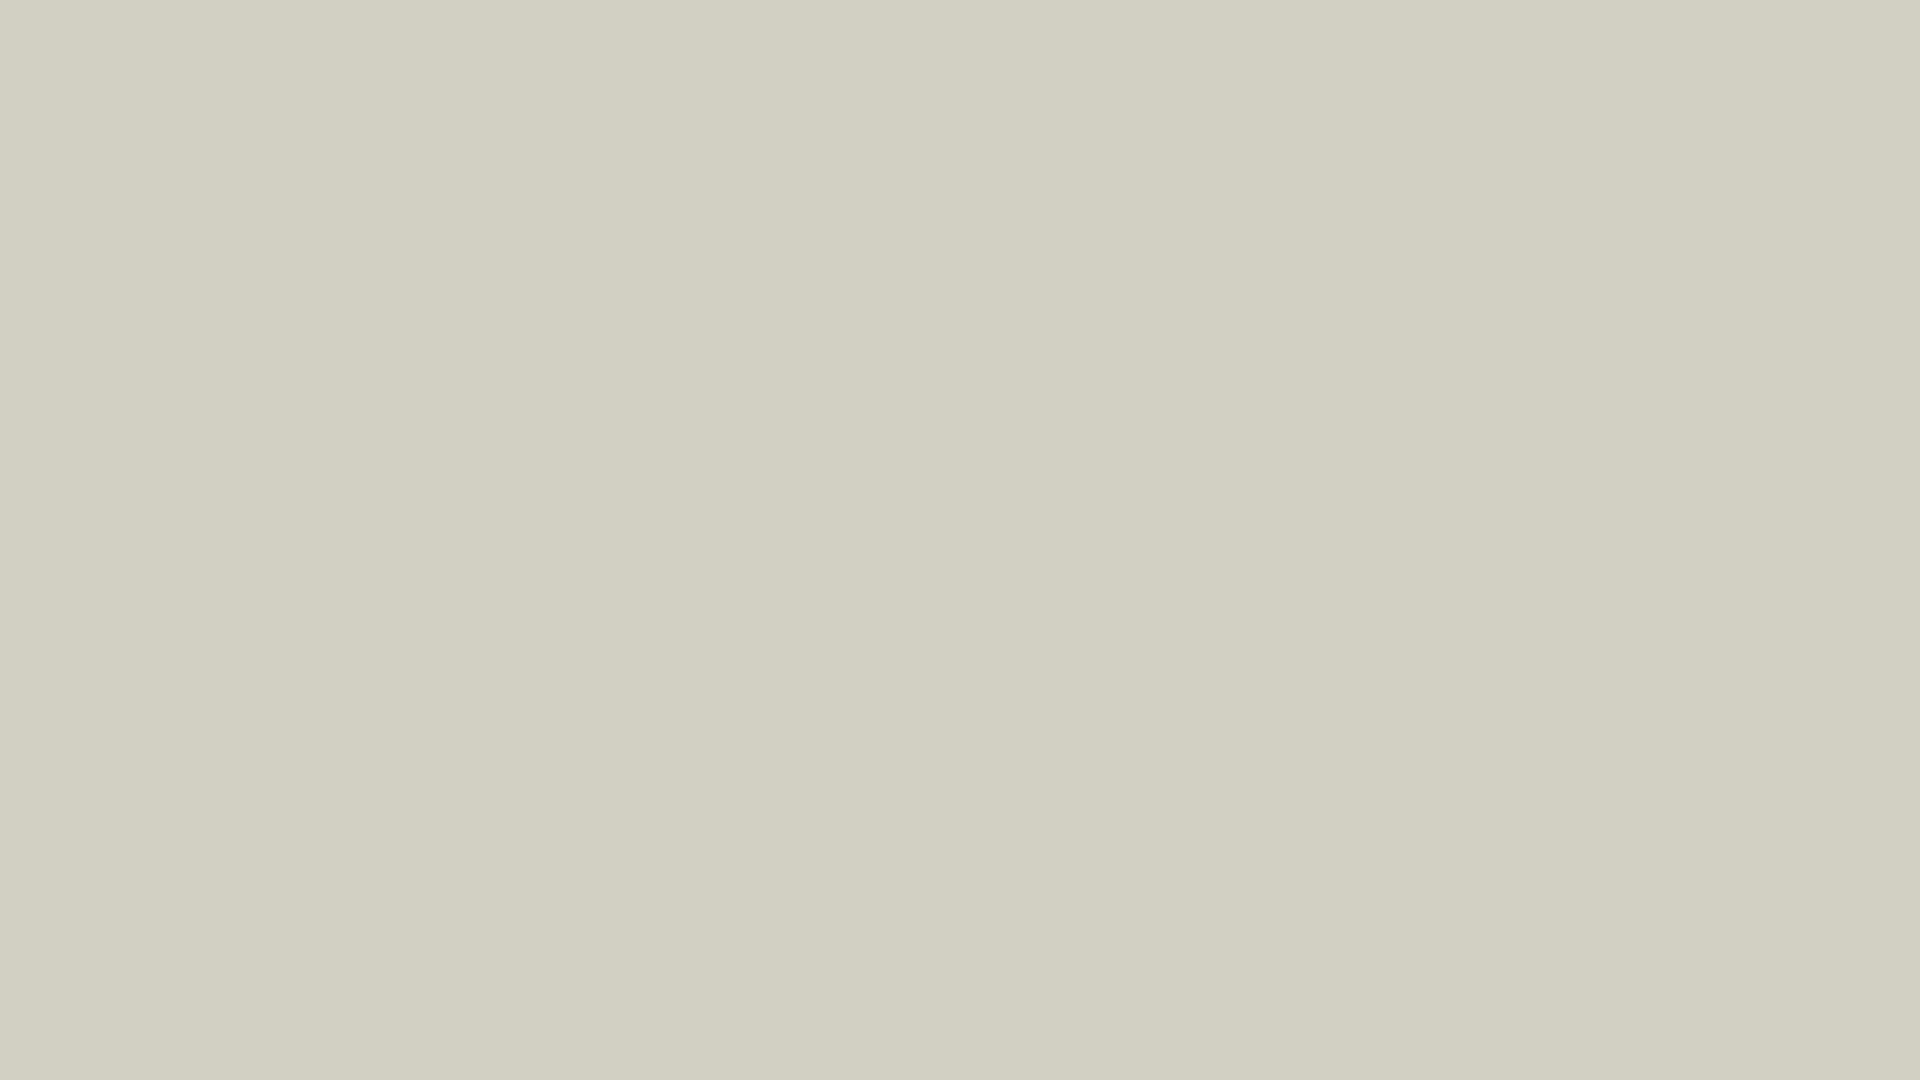 1920x1080 Pastel Gray Solid Color Background